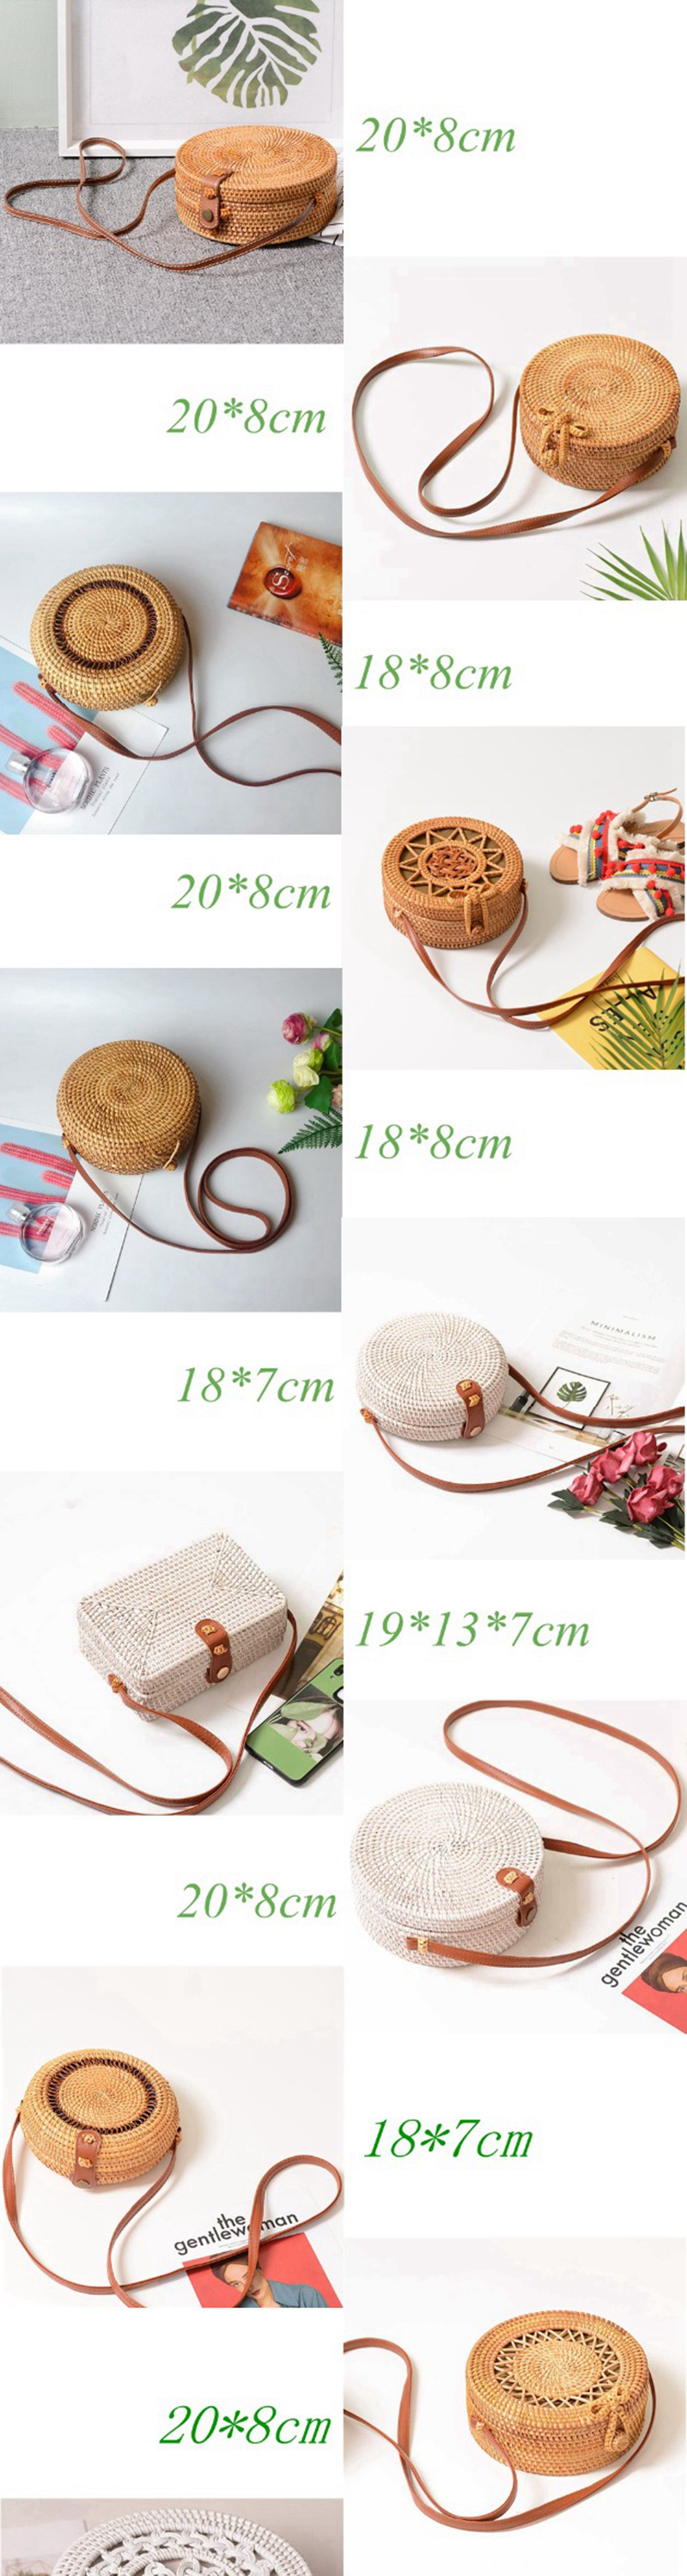 Bali Vintage Handmade Crossbody Leather Bag Round Beach Bag Girls Circle Rattan bag Small Bohemian Shoulder bag 9